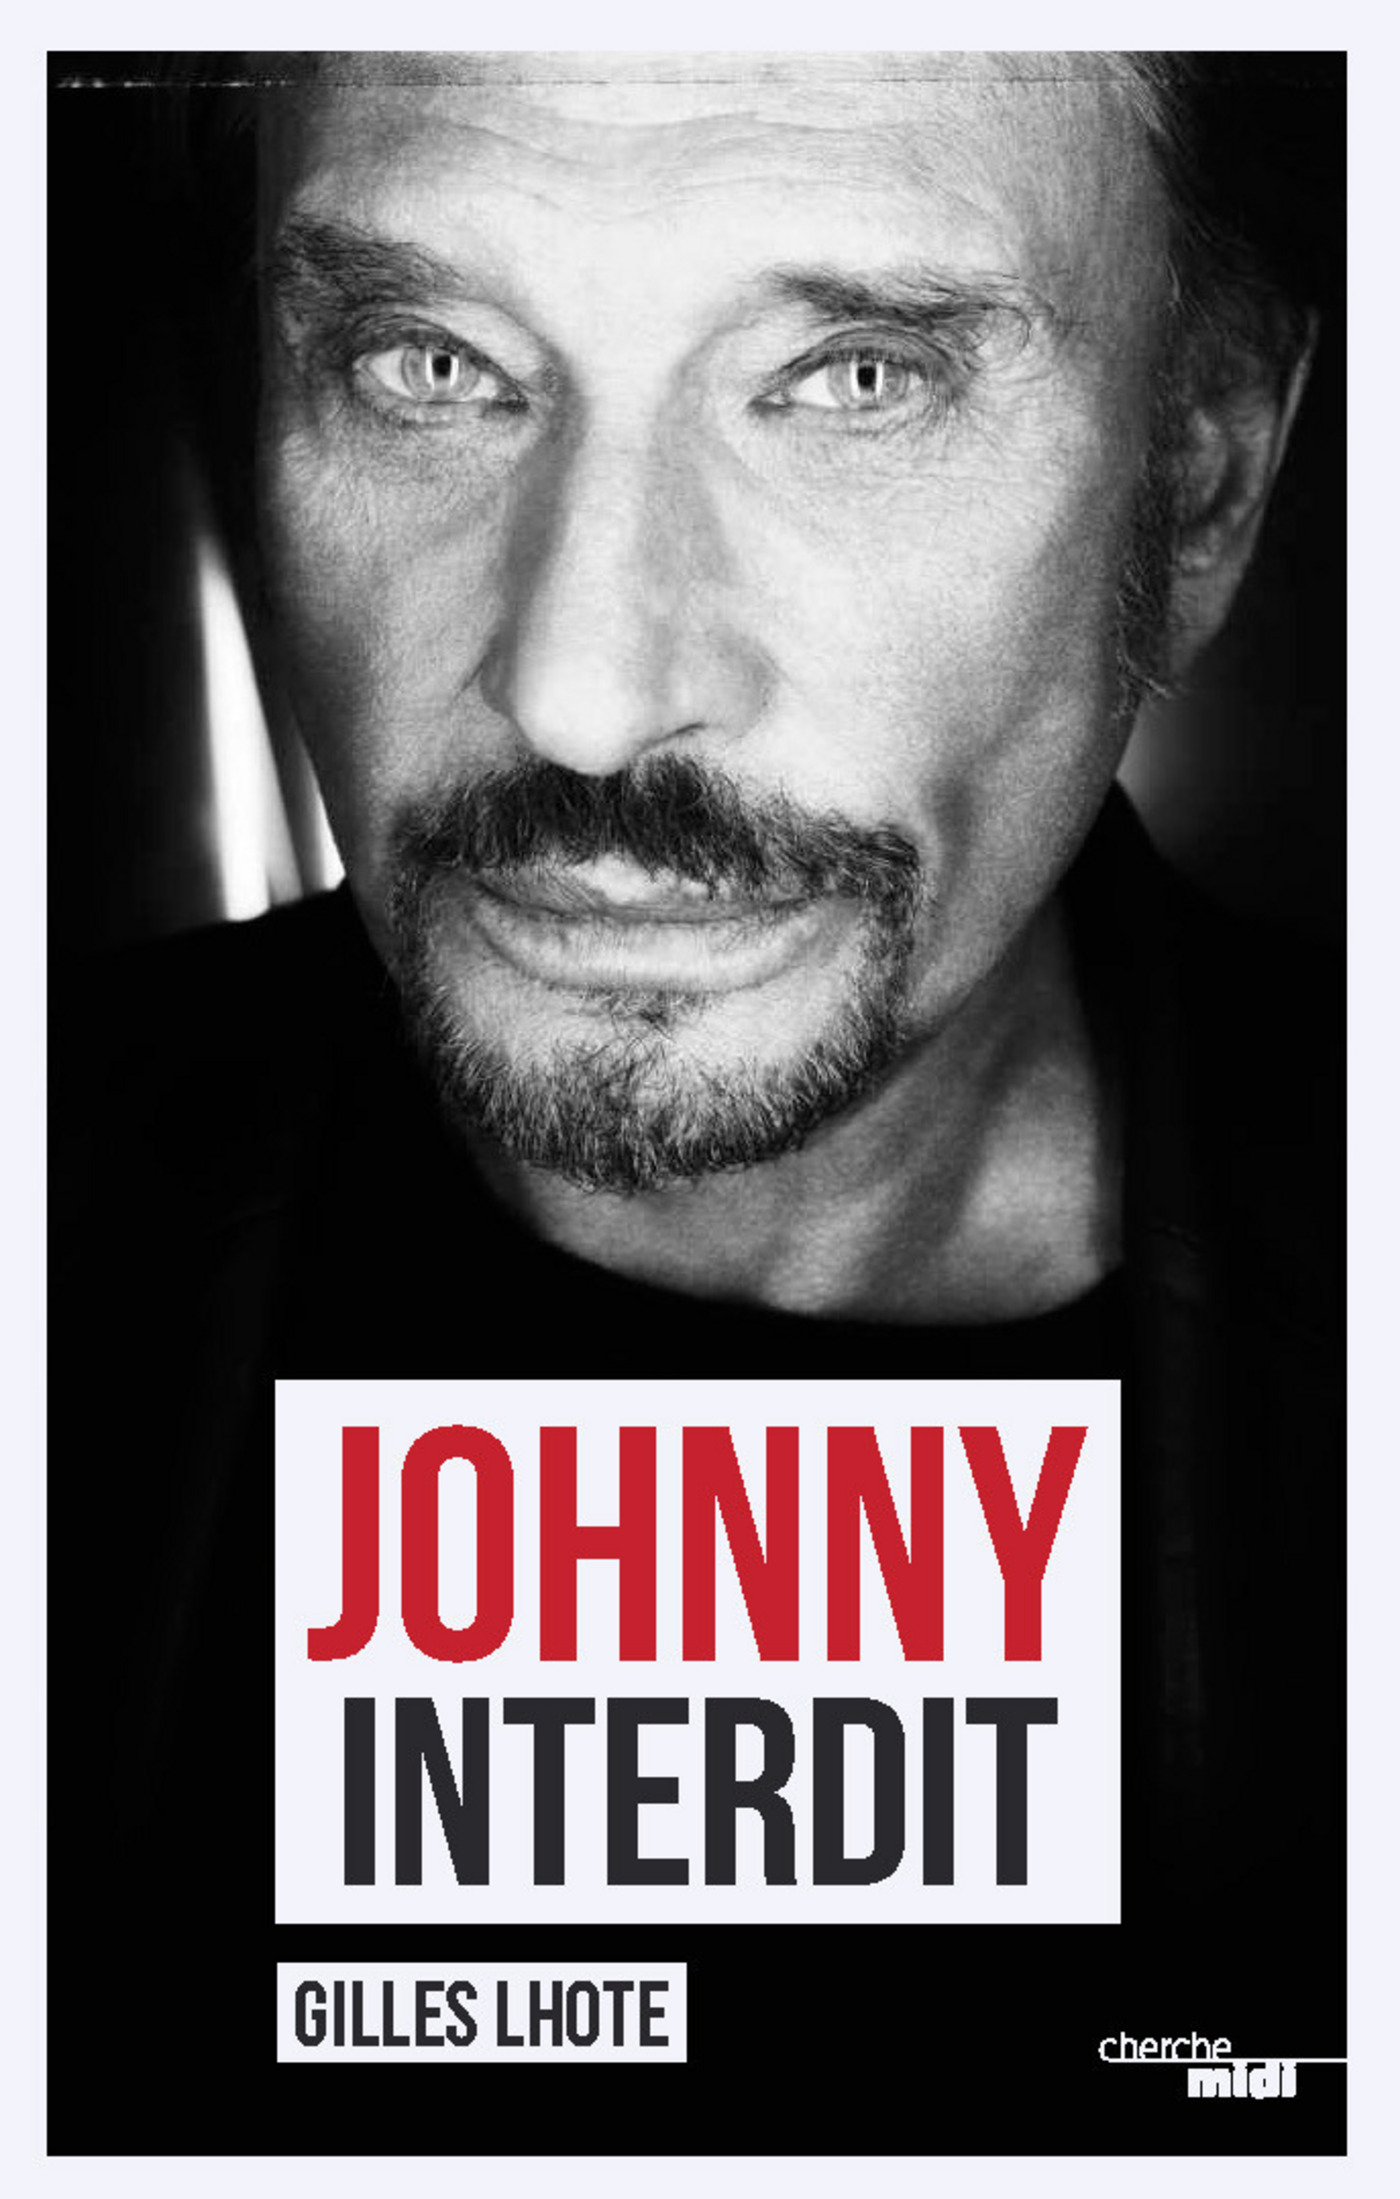 Vignette du livre Johnny interdit